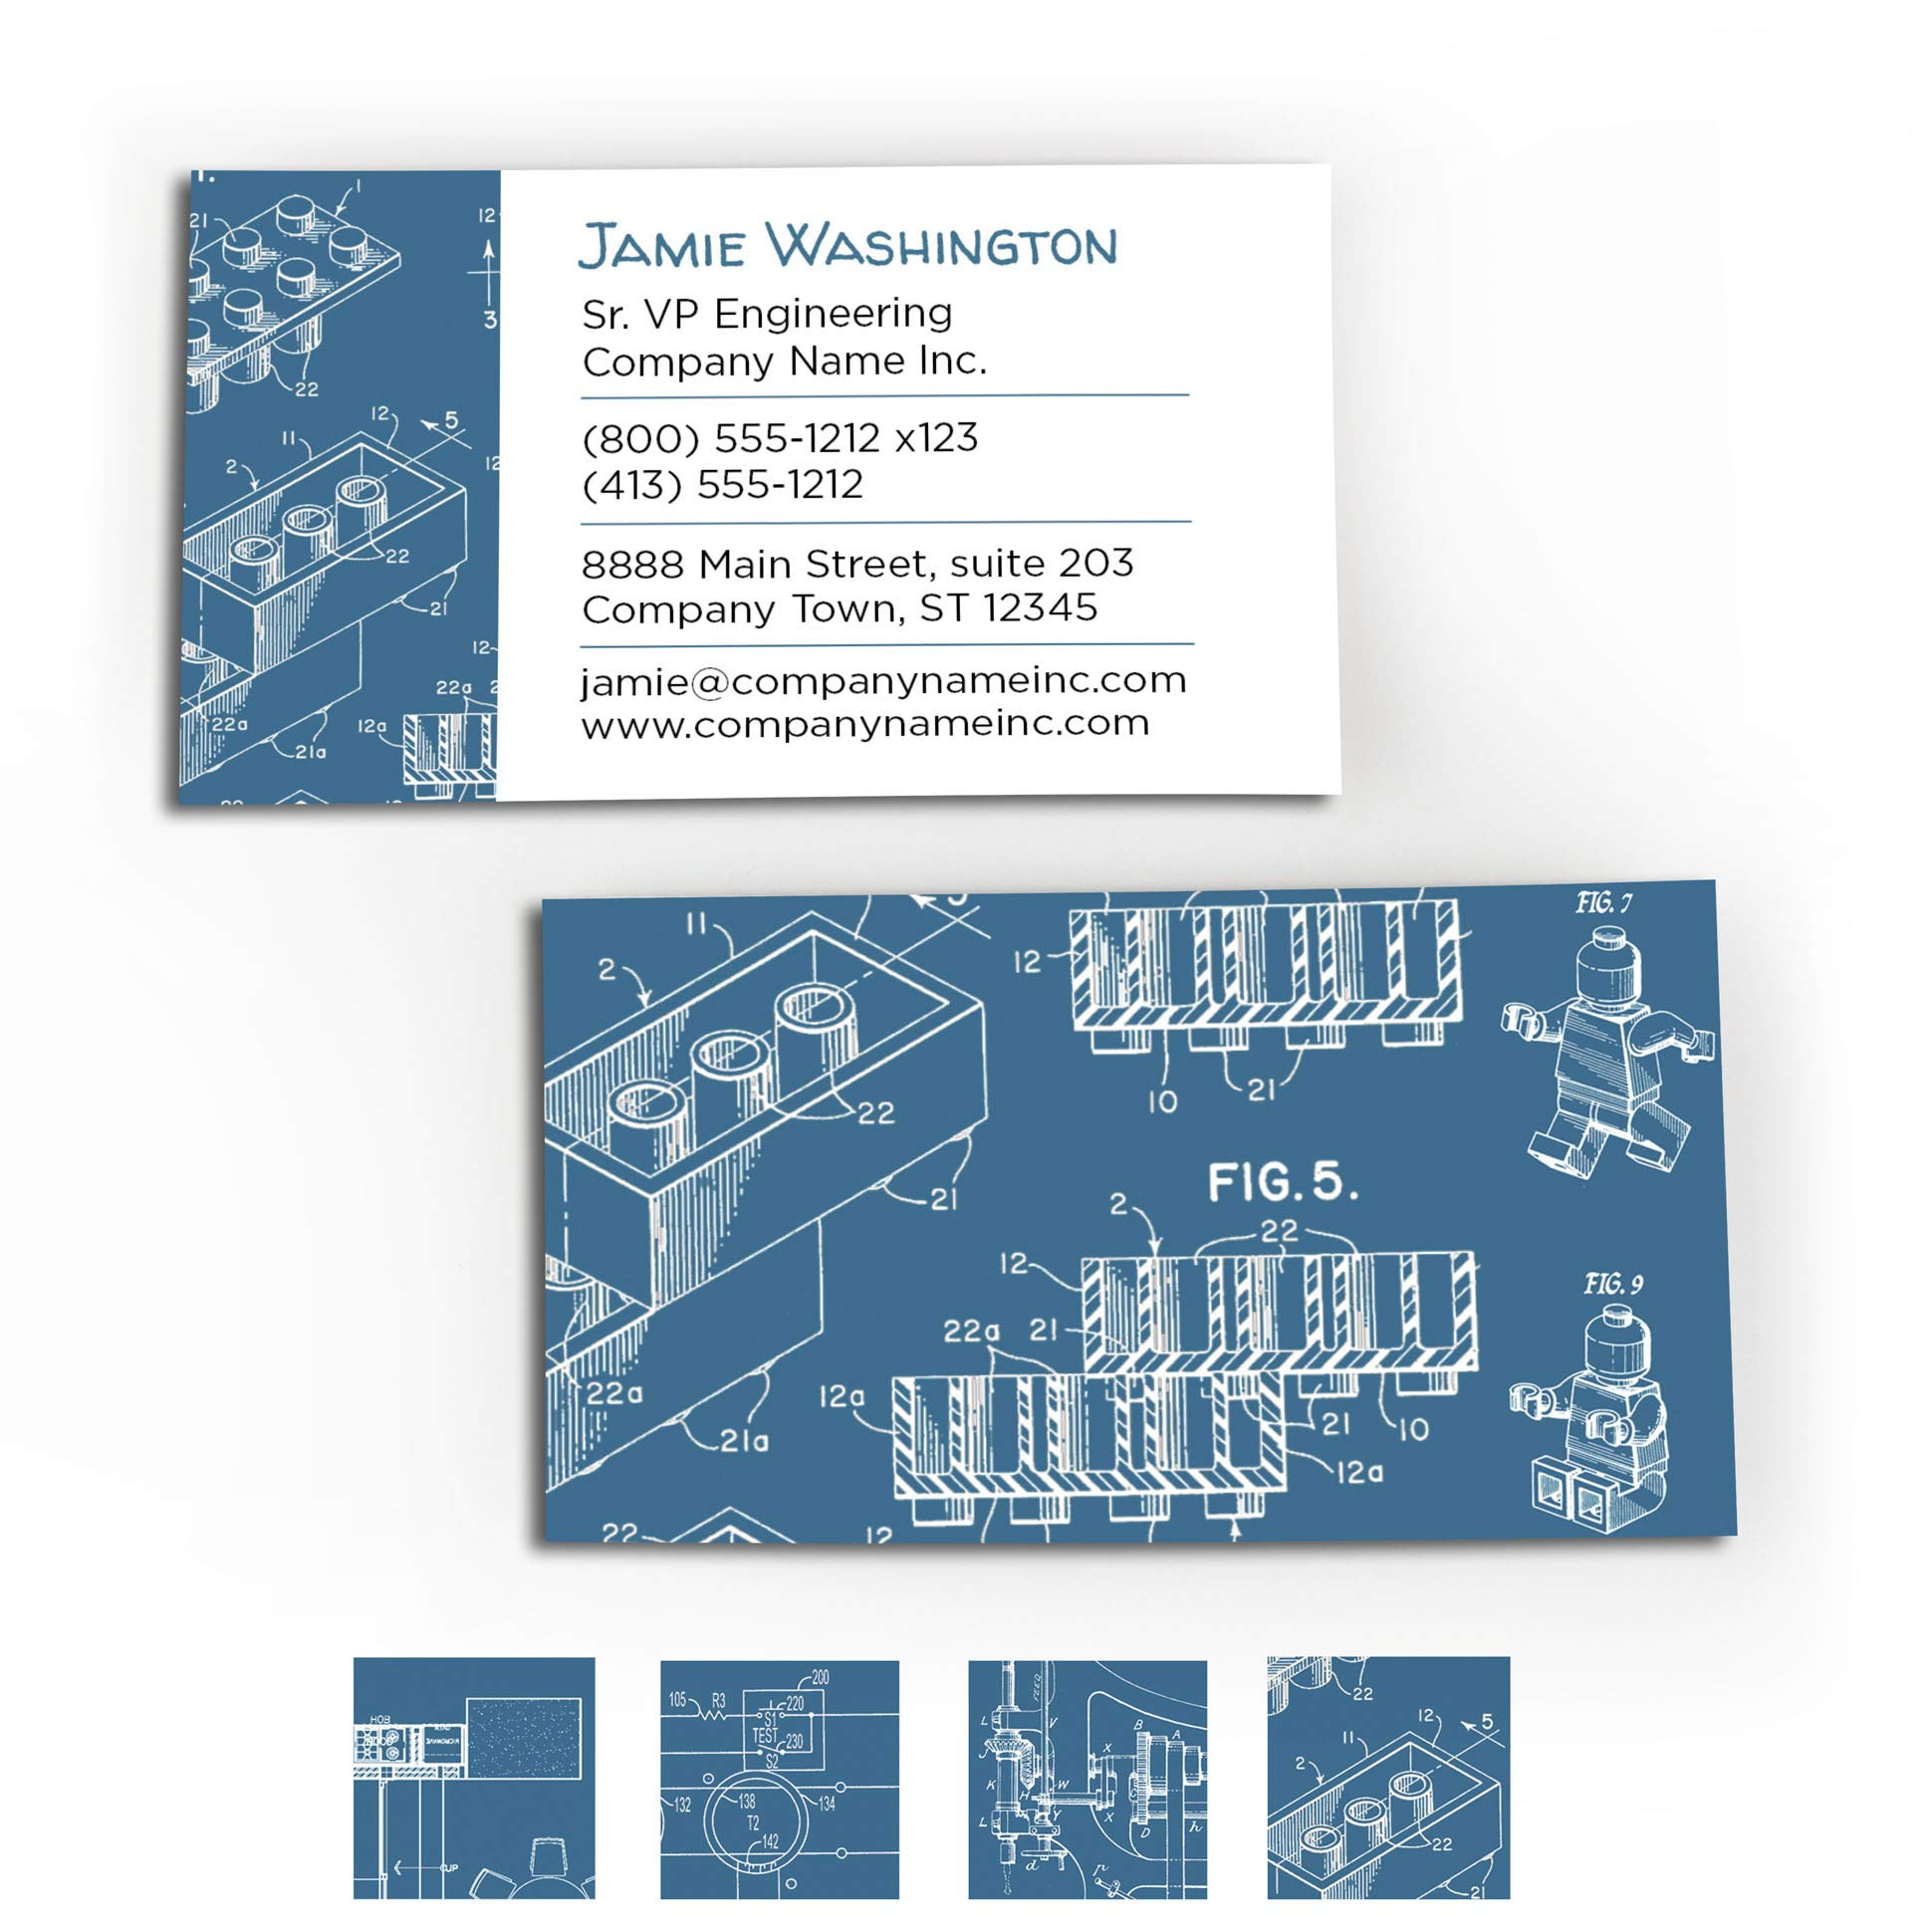 Buttonsmith Custom Premium Printed Superfine Business Cards - 3.5''x2'' - Quantity 200 - Double-Sided, Superfine Thick Luxury Touch Stock - Blueprints Appointment - Made in The USA by Buttonsmith